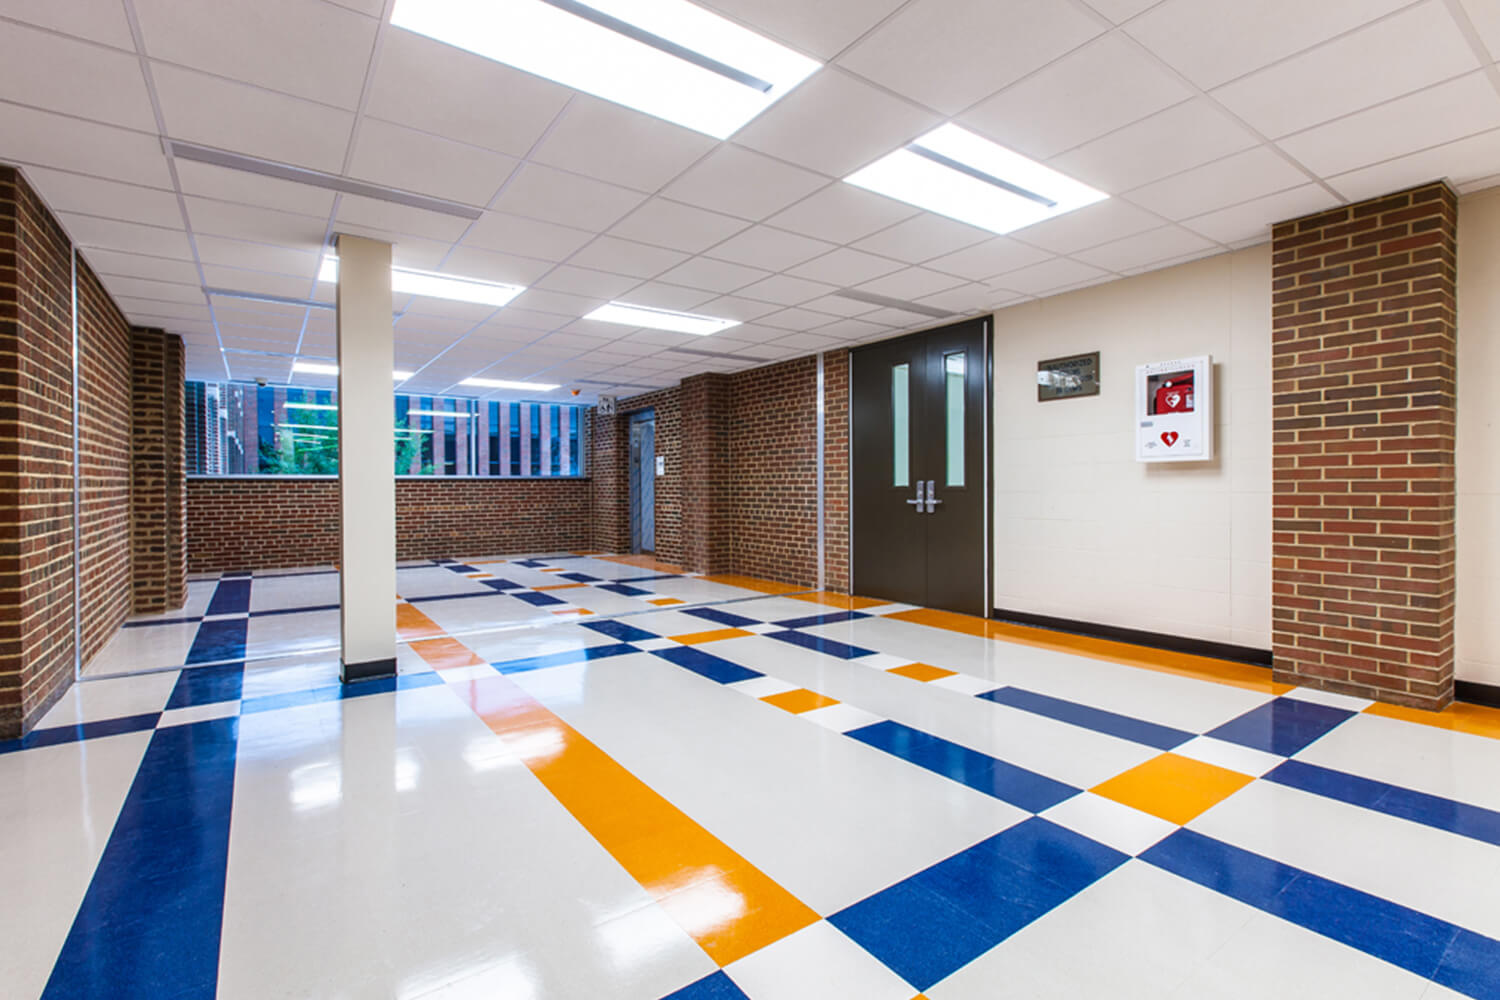 Evanston Township High School - Entry & Renovation Project ...